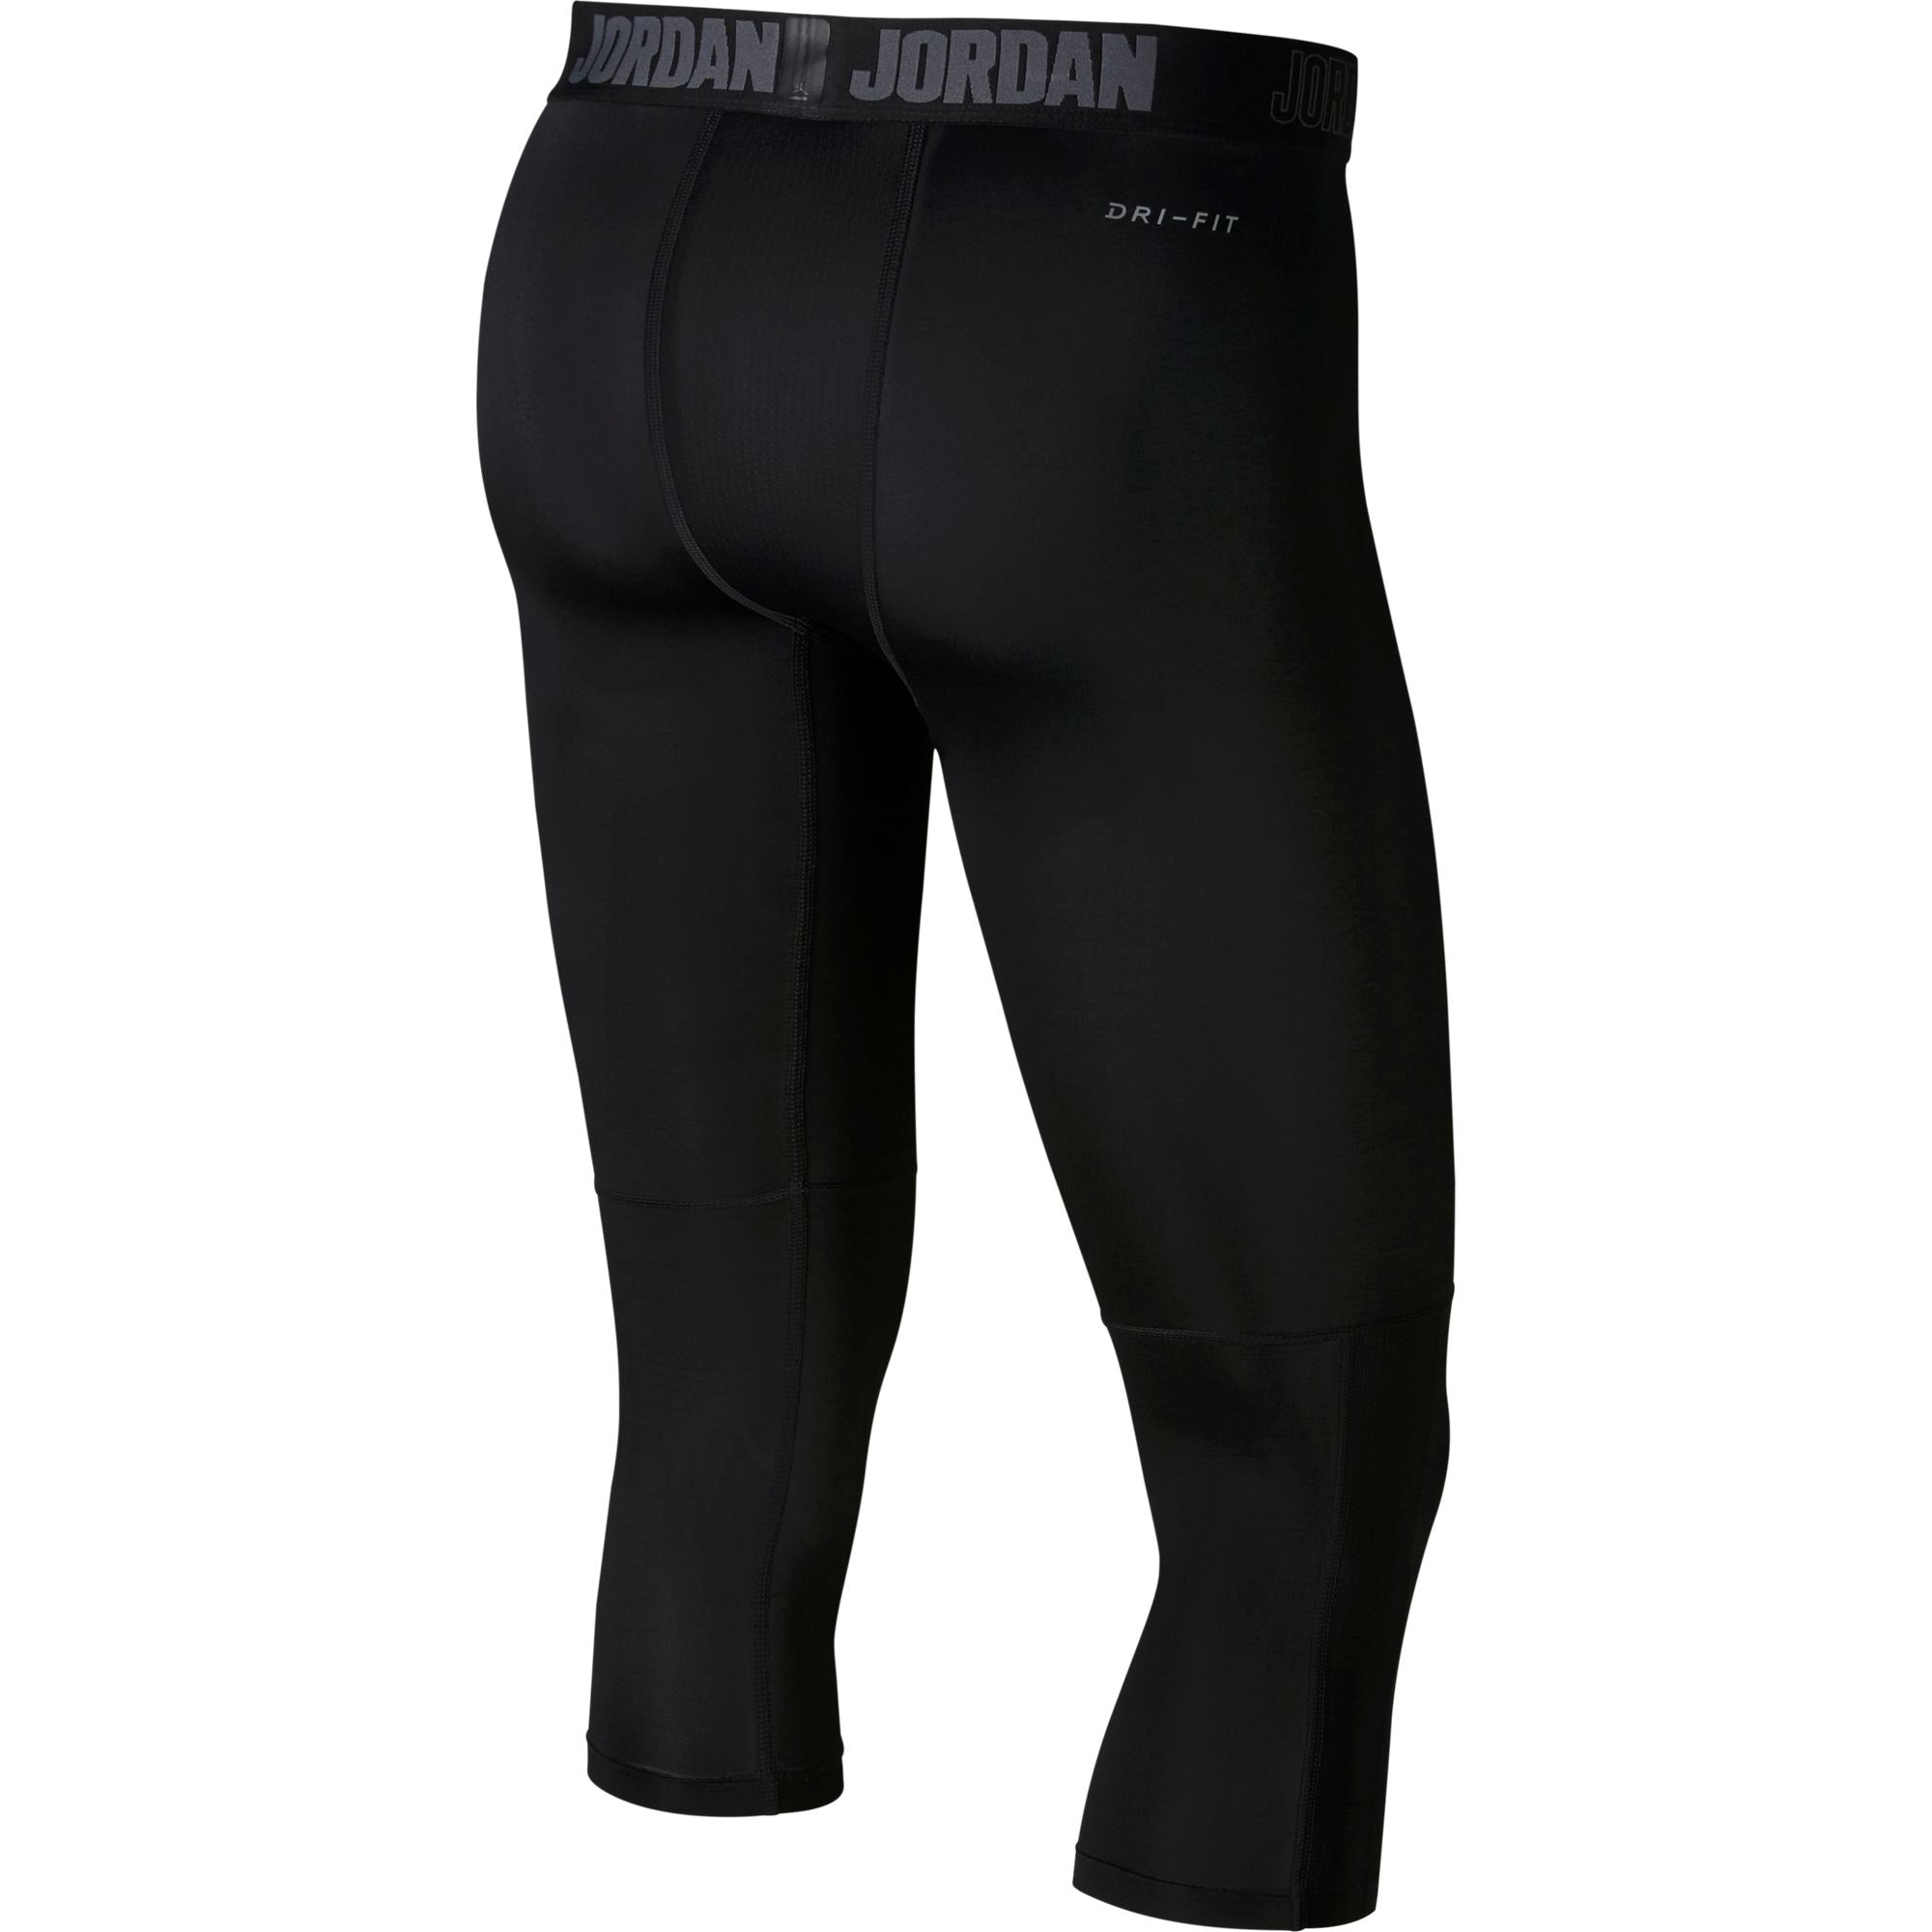 Nike Jordan Dry 23 Alpha 3/4 Training Tights - Black/Dark Grey